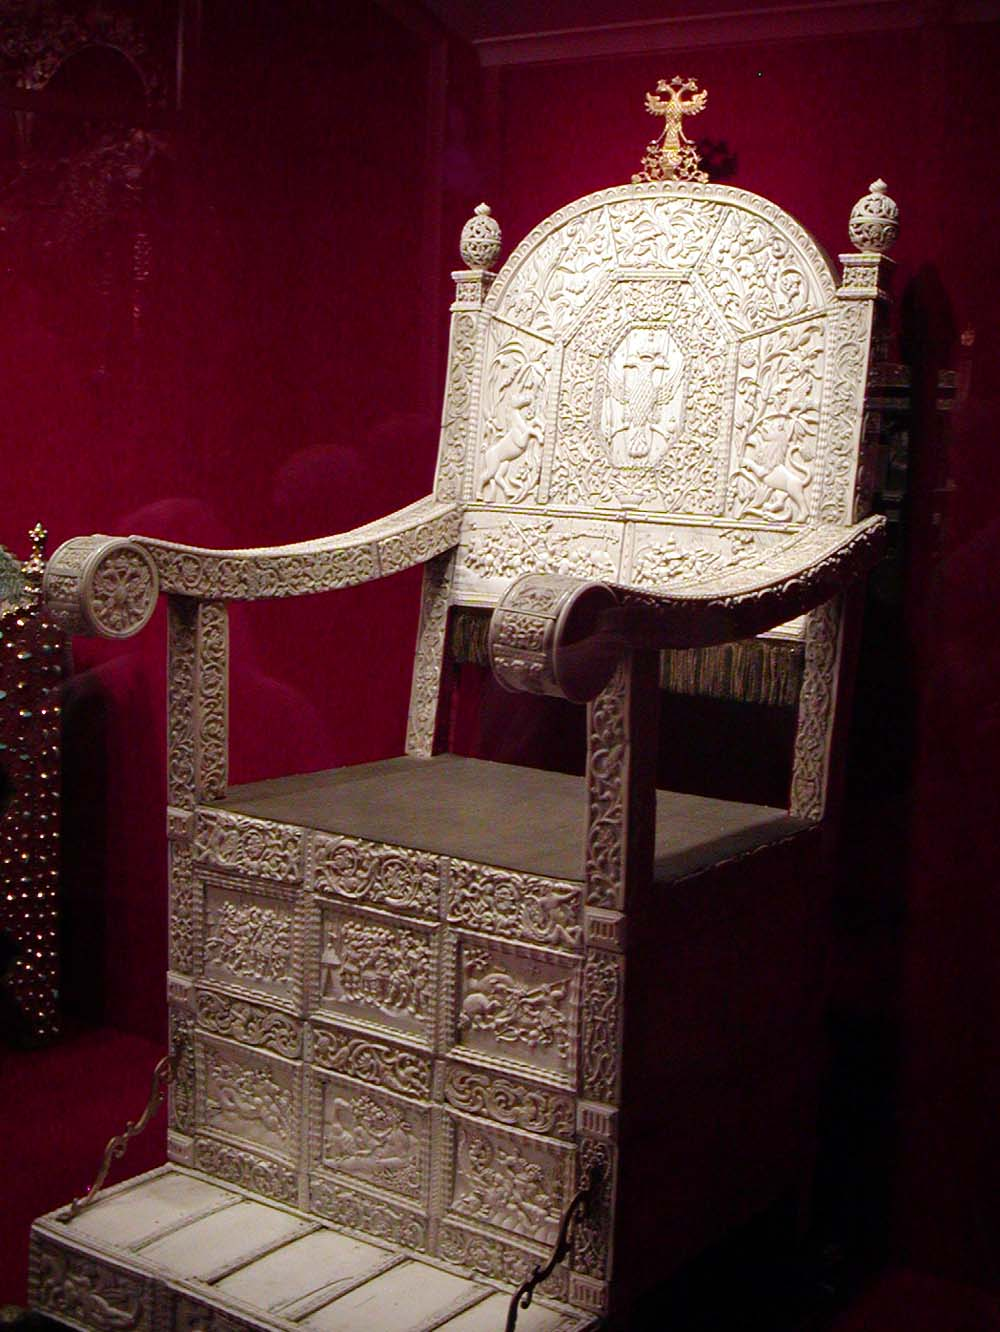 https://upload.wikimedia.org/wikipedia/commons/0/0a/Ivans_ivory_throne.jpg